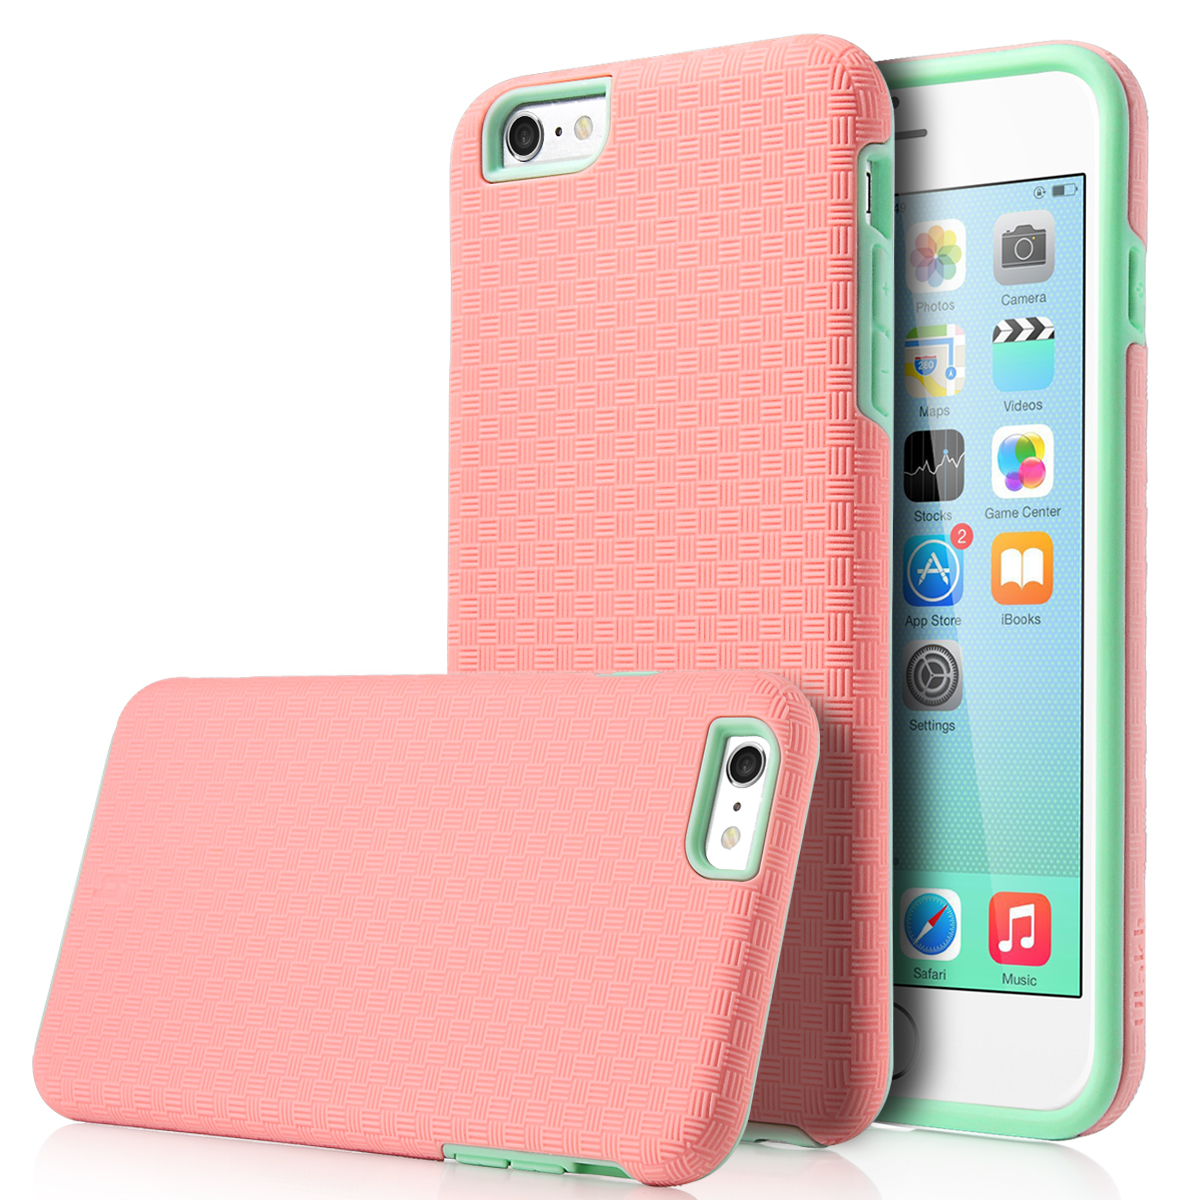 Iphone S Case Mint Green